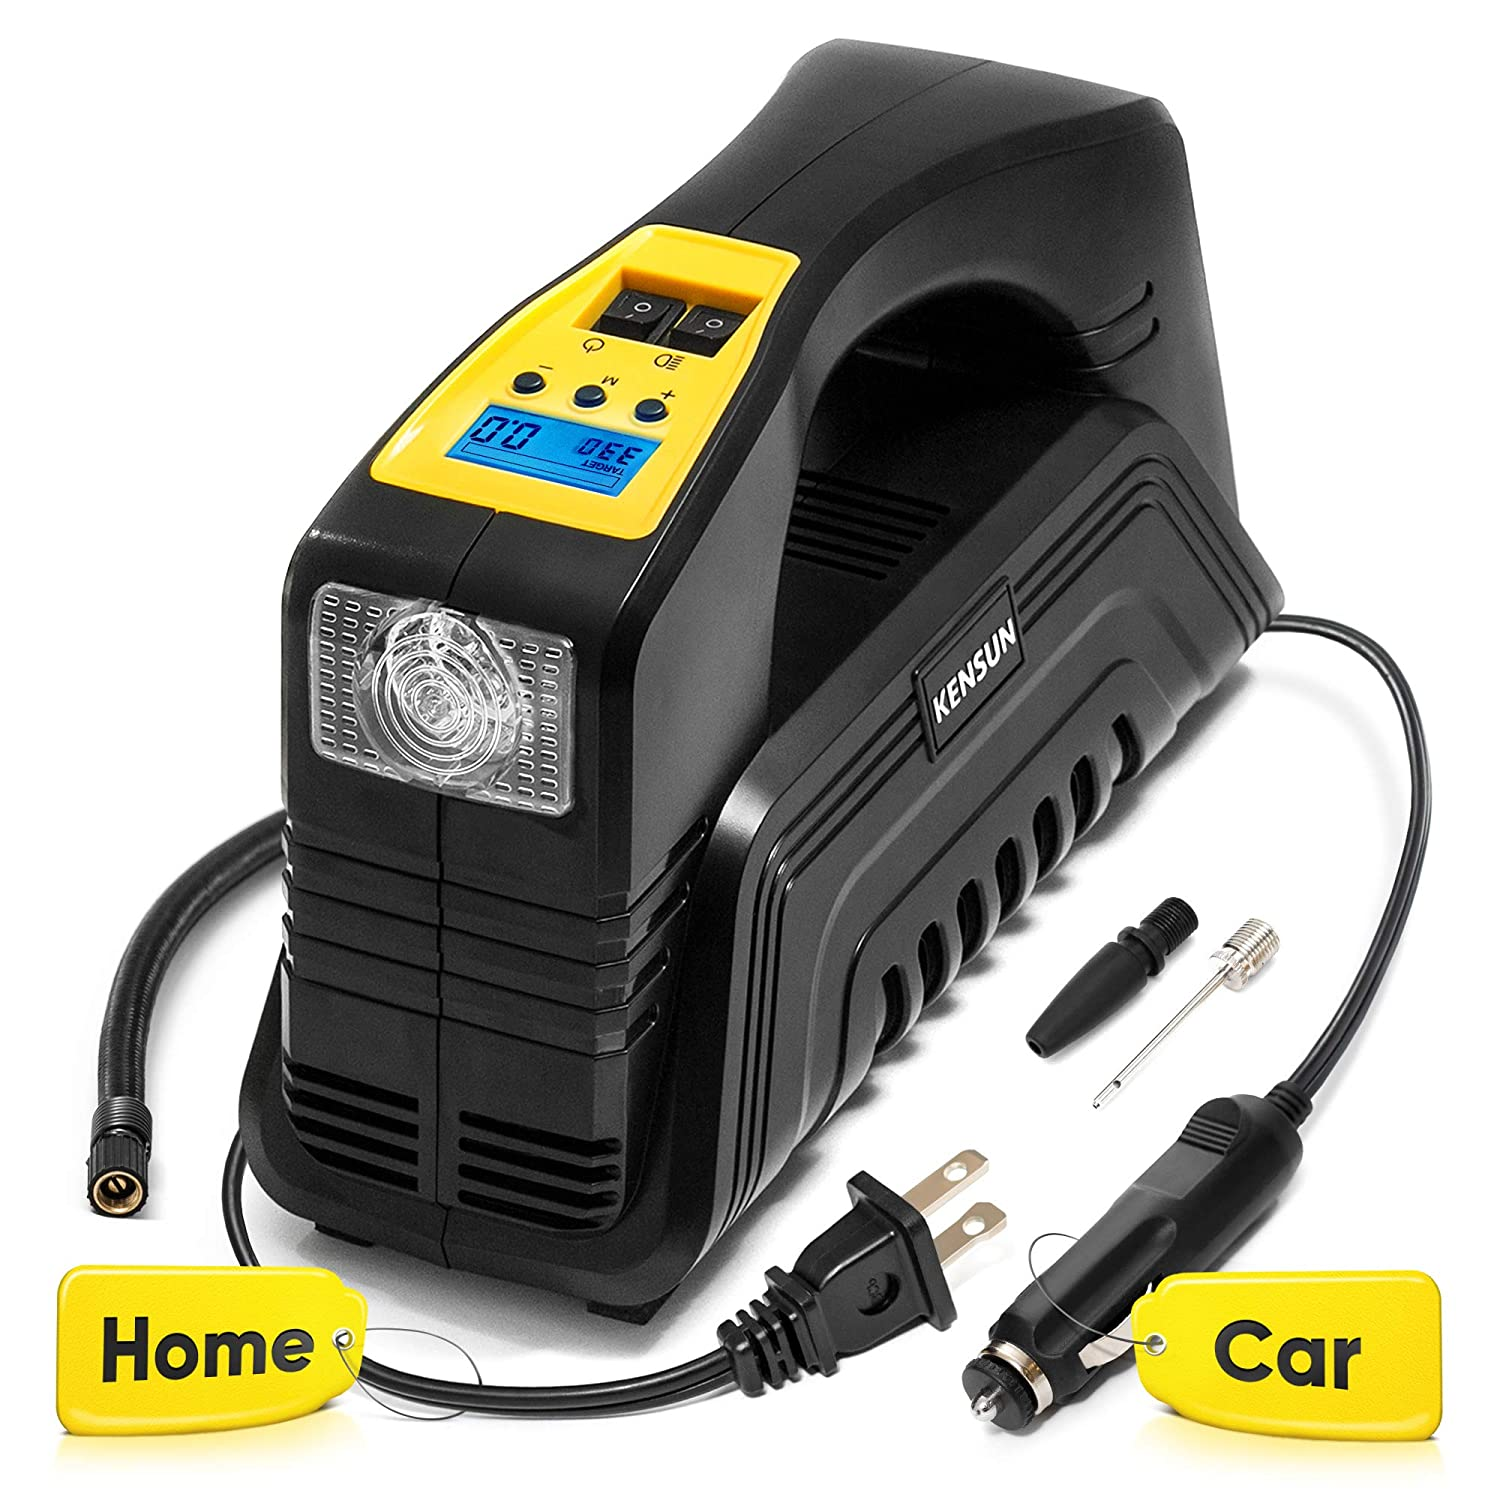 Kensun AC/DC Digital Portable Air Compressor Pump, 12V DC and 110V AC